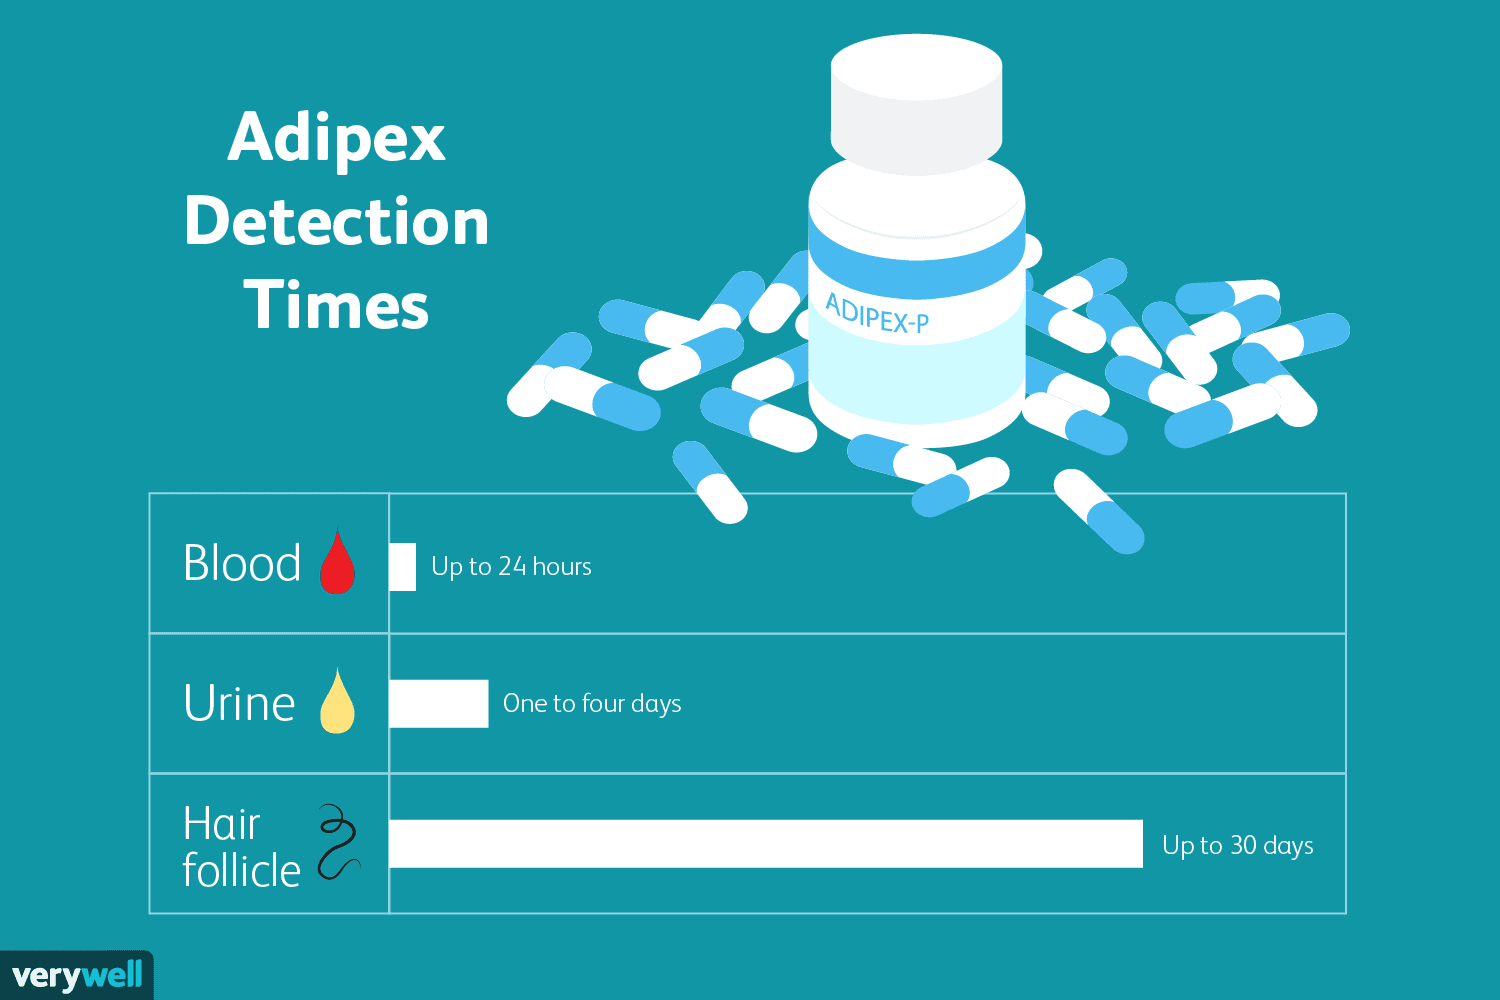 How To Get Adipex